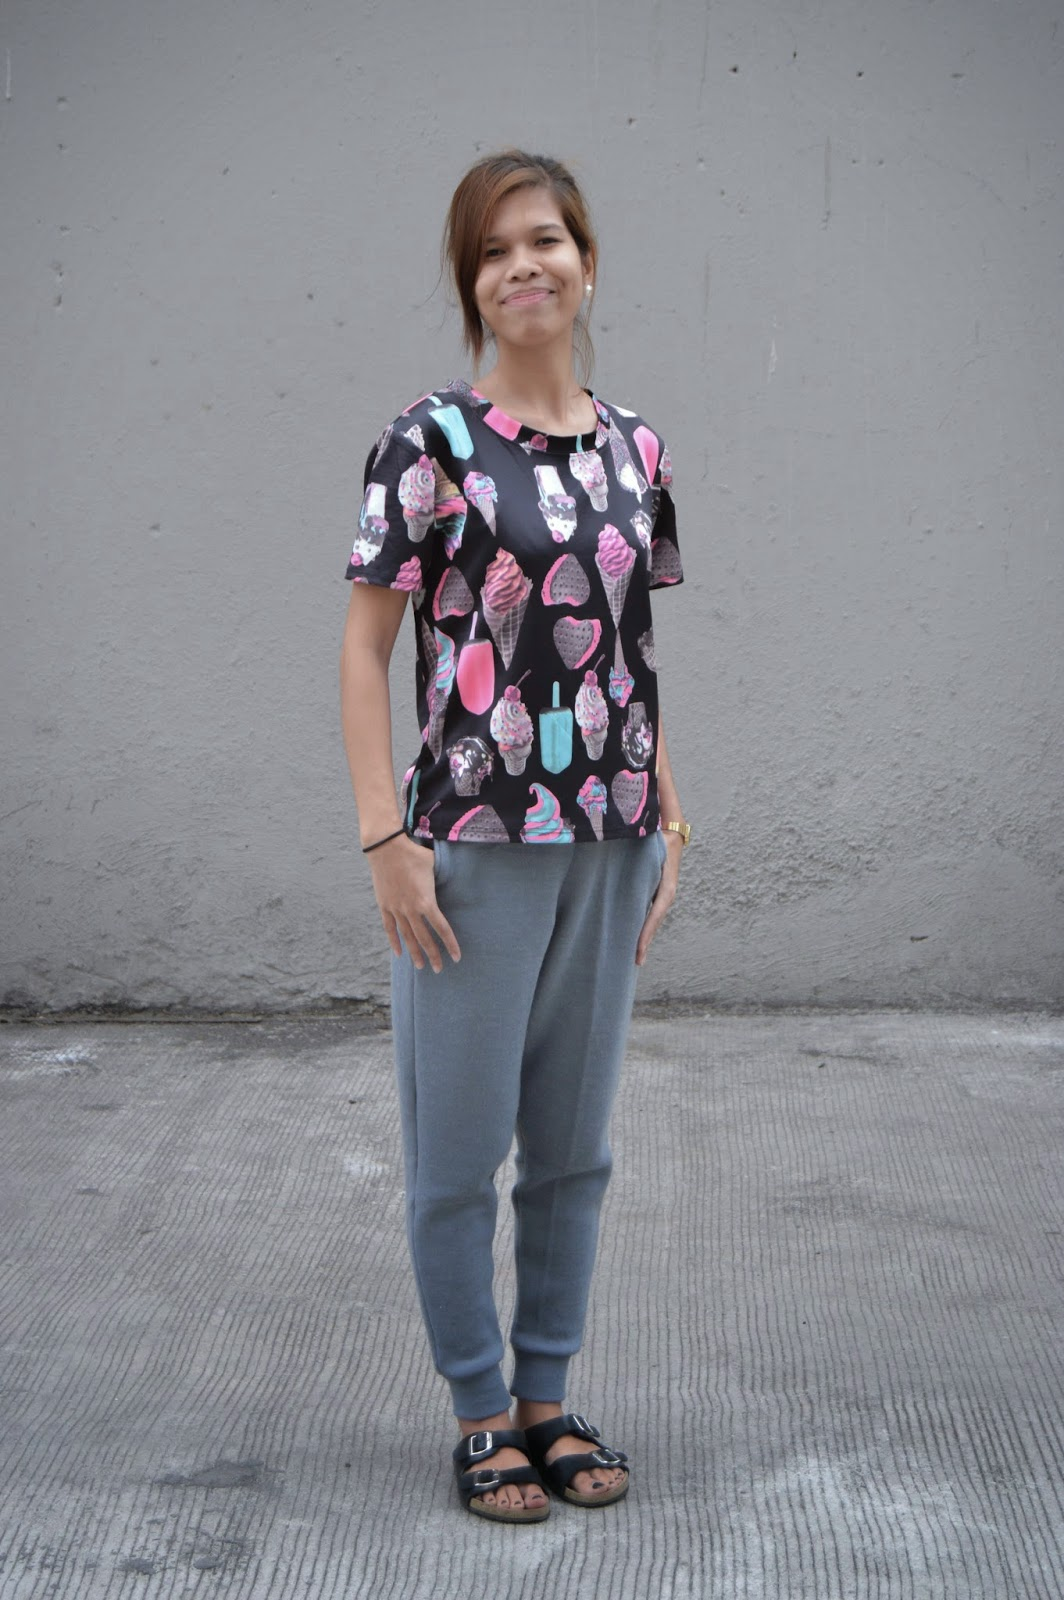 fashion blogger, style blogger, cebu blogger, cebu style blogger, blogger, filipina blogger, cebuana blogger, nested thoughts, katherine cutar, katherine anne cutar, katherineanika, katherine annika, ootd, ootd pilipinas, sugar coated, dessert, dessert outfit, ice cream, ice cream sandwich, mandal, birkenstock, birks, birks ph, birks cebu, joggers, joggers ph, joggers cebu